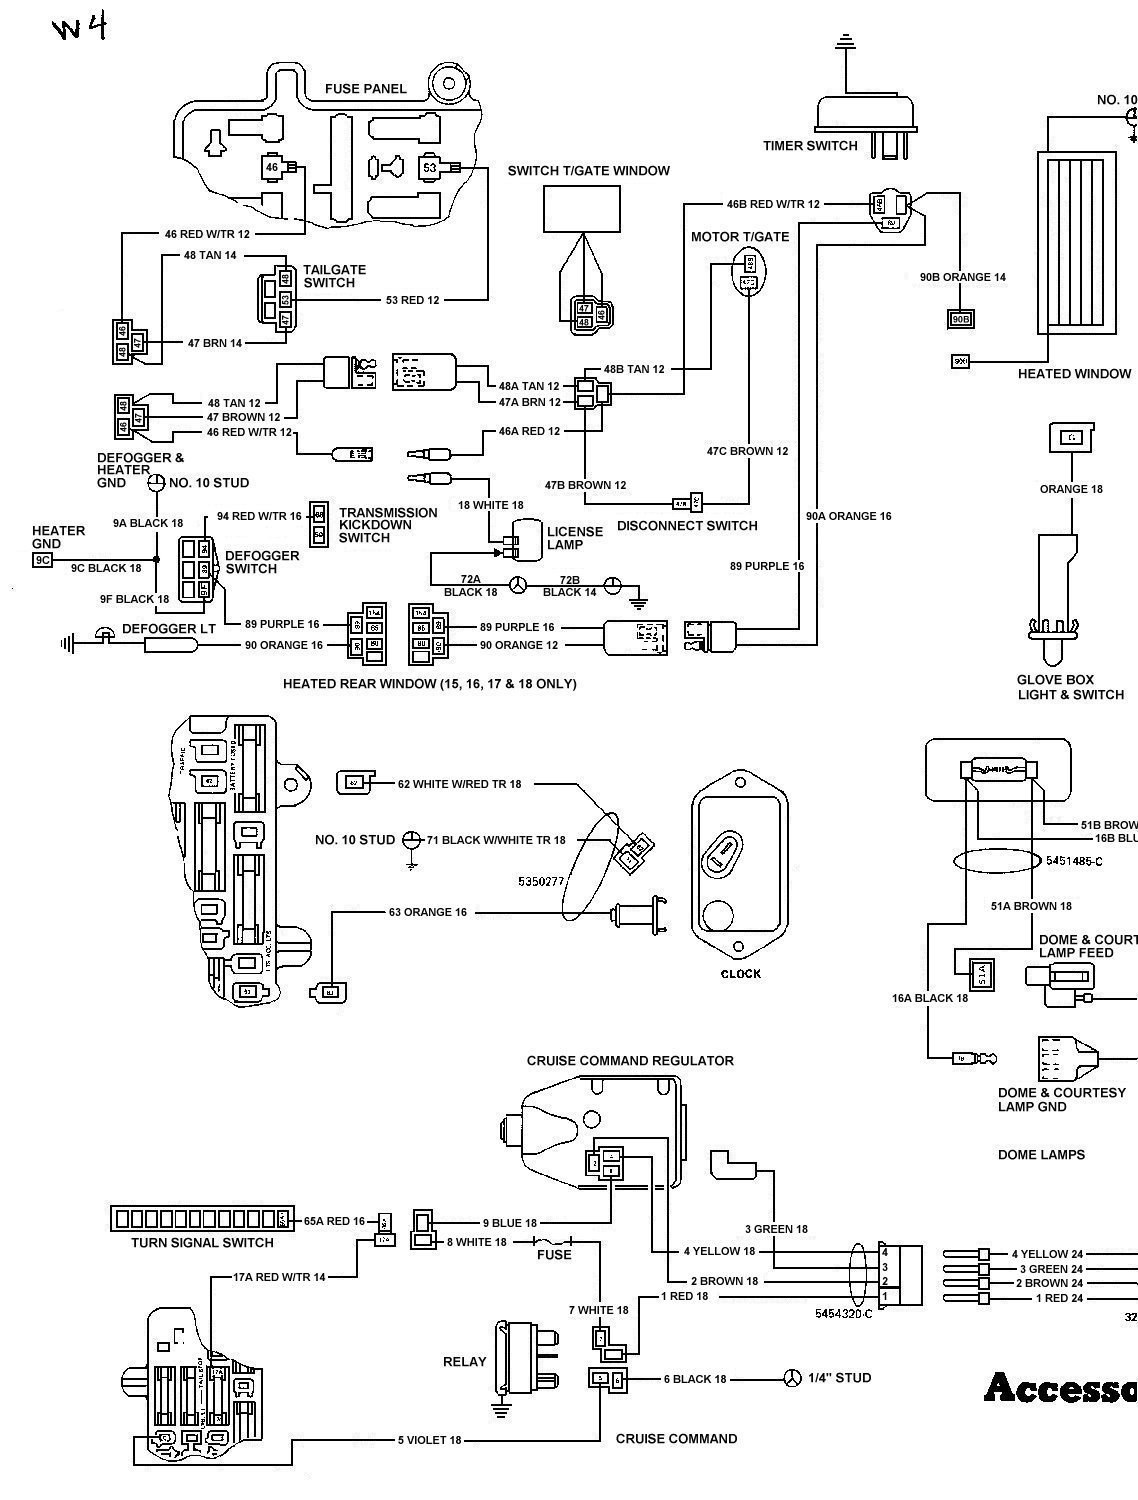 1983 Jeep Cj7 Wiring Diagram Library Willys Station Wagon Free Picture 78 Fsj Wiringdiagrampage4